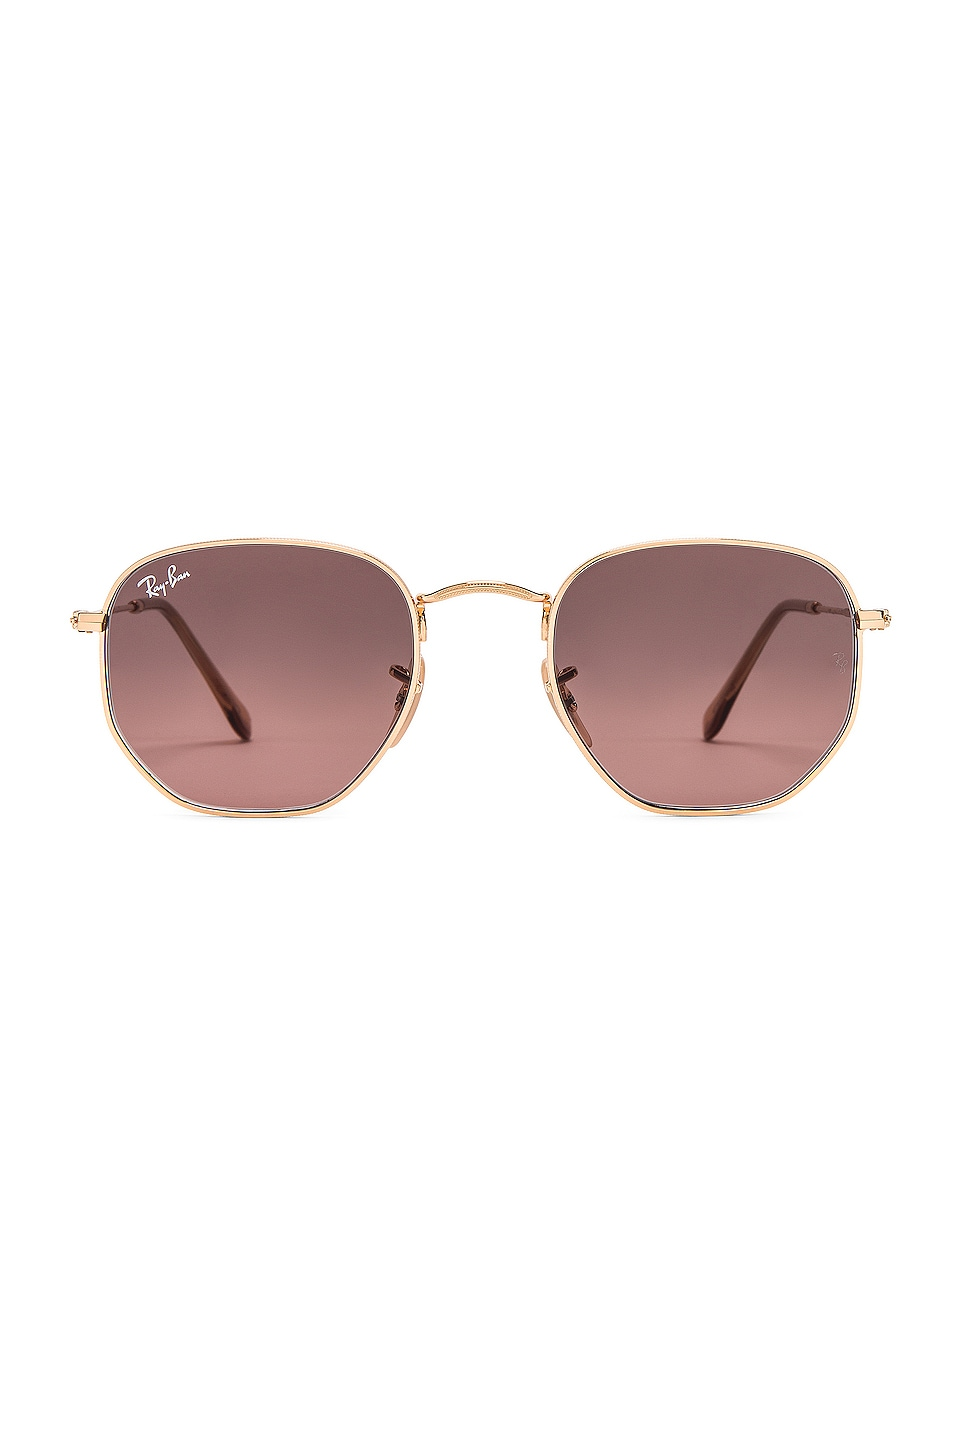 Ray-Ban Hexagonal Flat in Gold & Brown Grey Gradient